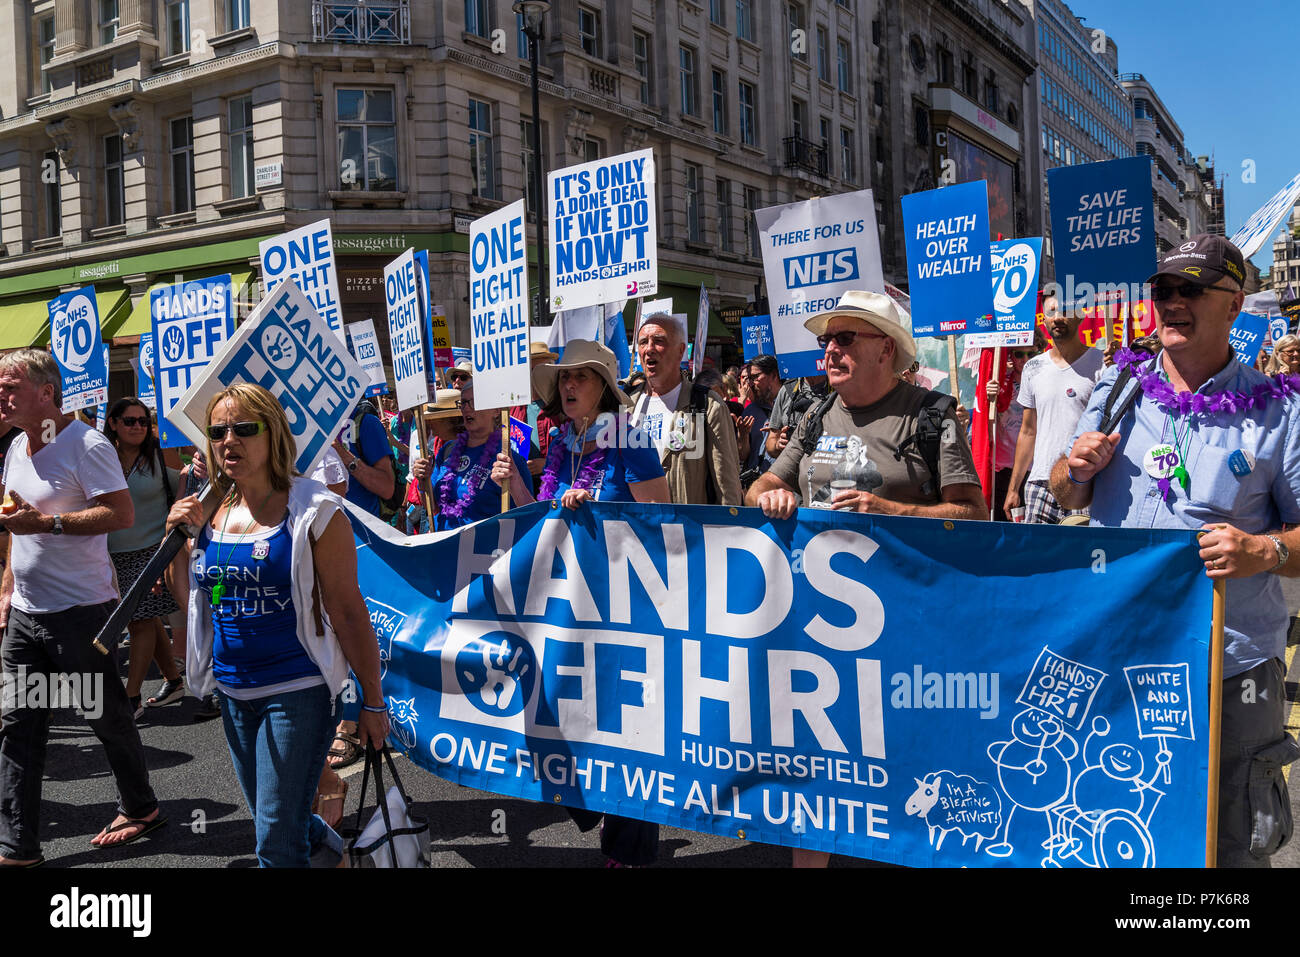 NHS 70th Anniversary March organised by People's Assembly, Hands off HRI banner, London, UK, 30/06/2018 - Stock Image